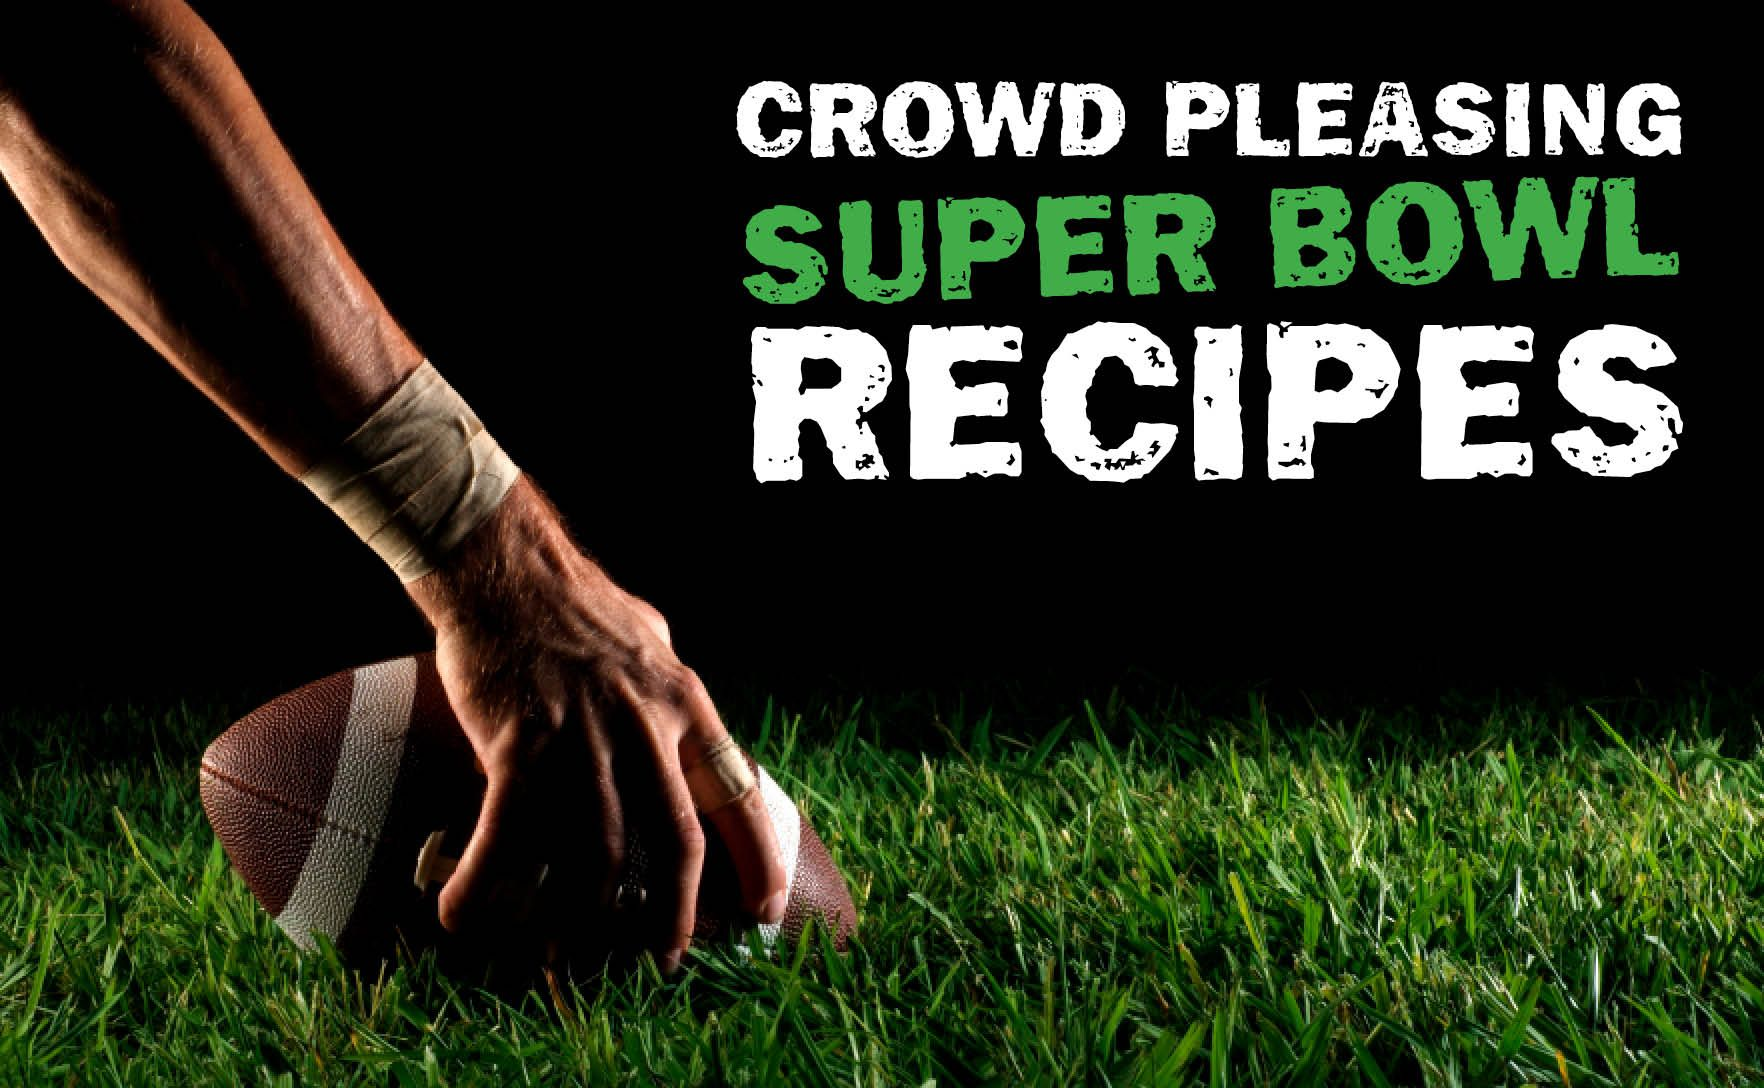 Crowd Pleasing Super Bowl Recipes—Here are some great ideas if you are hosting or going to any Super Bowl parties!